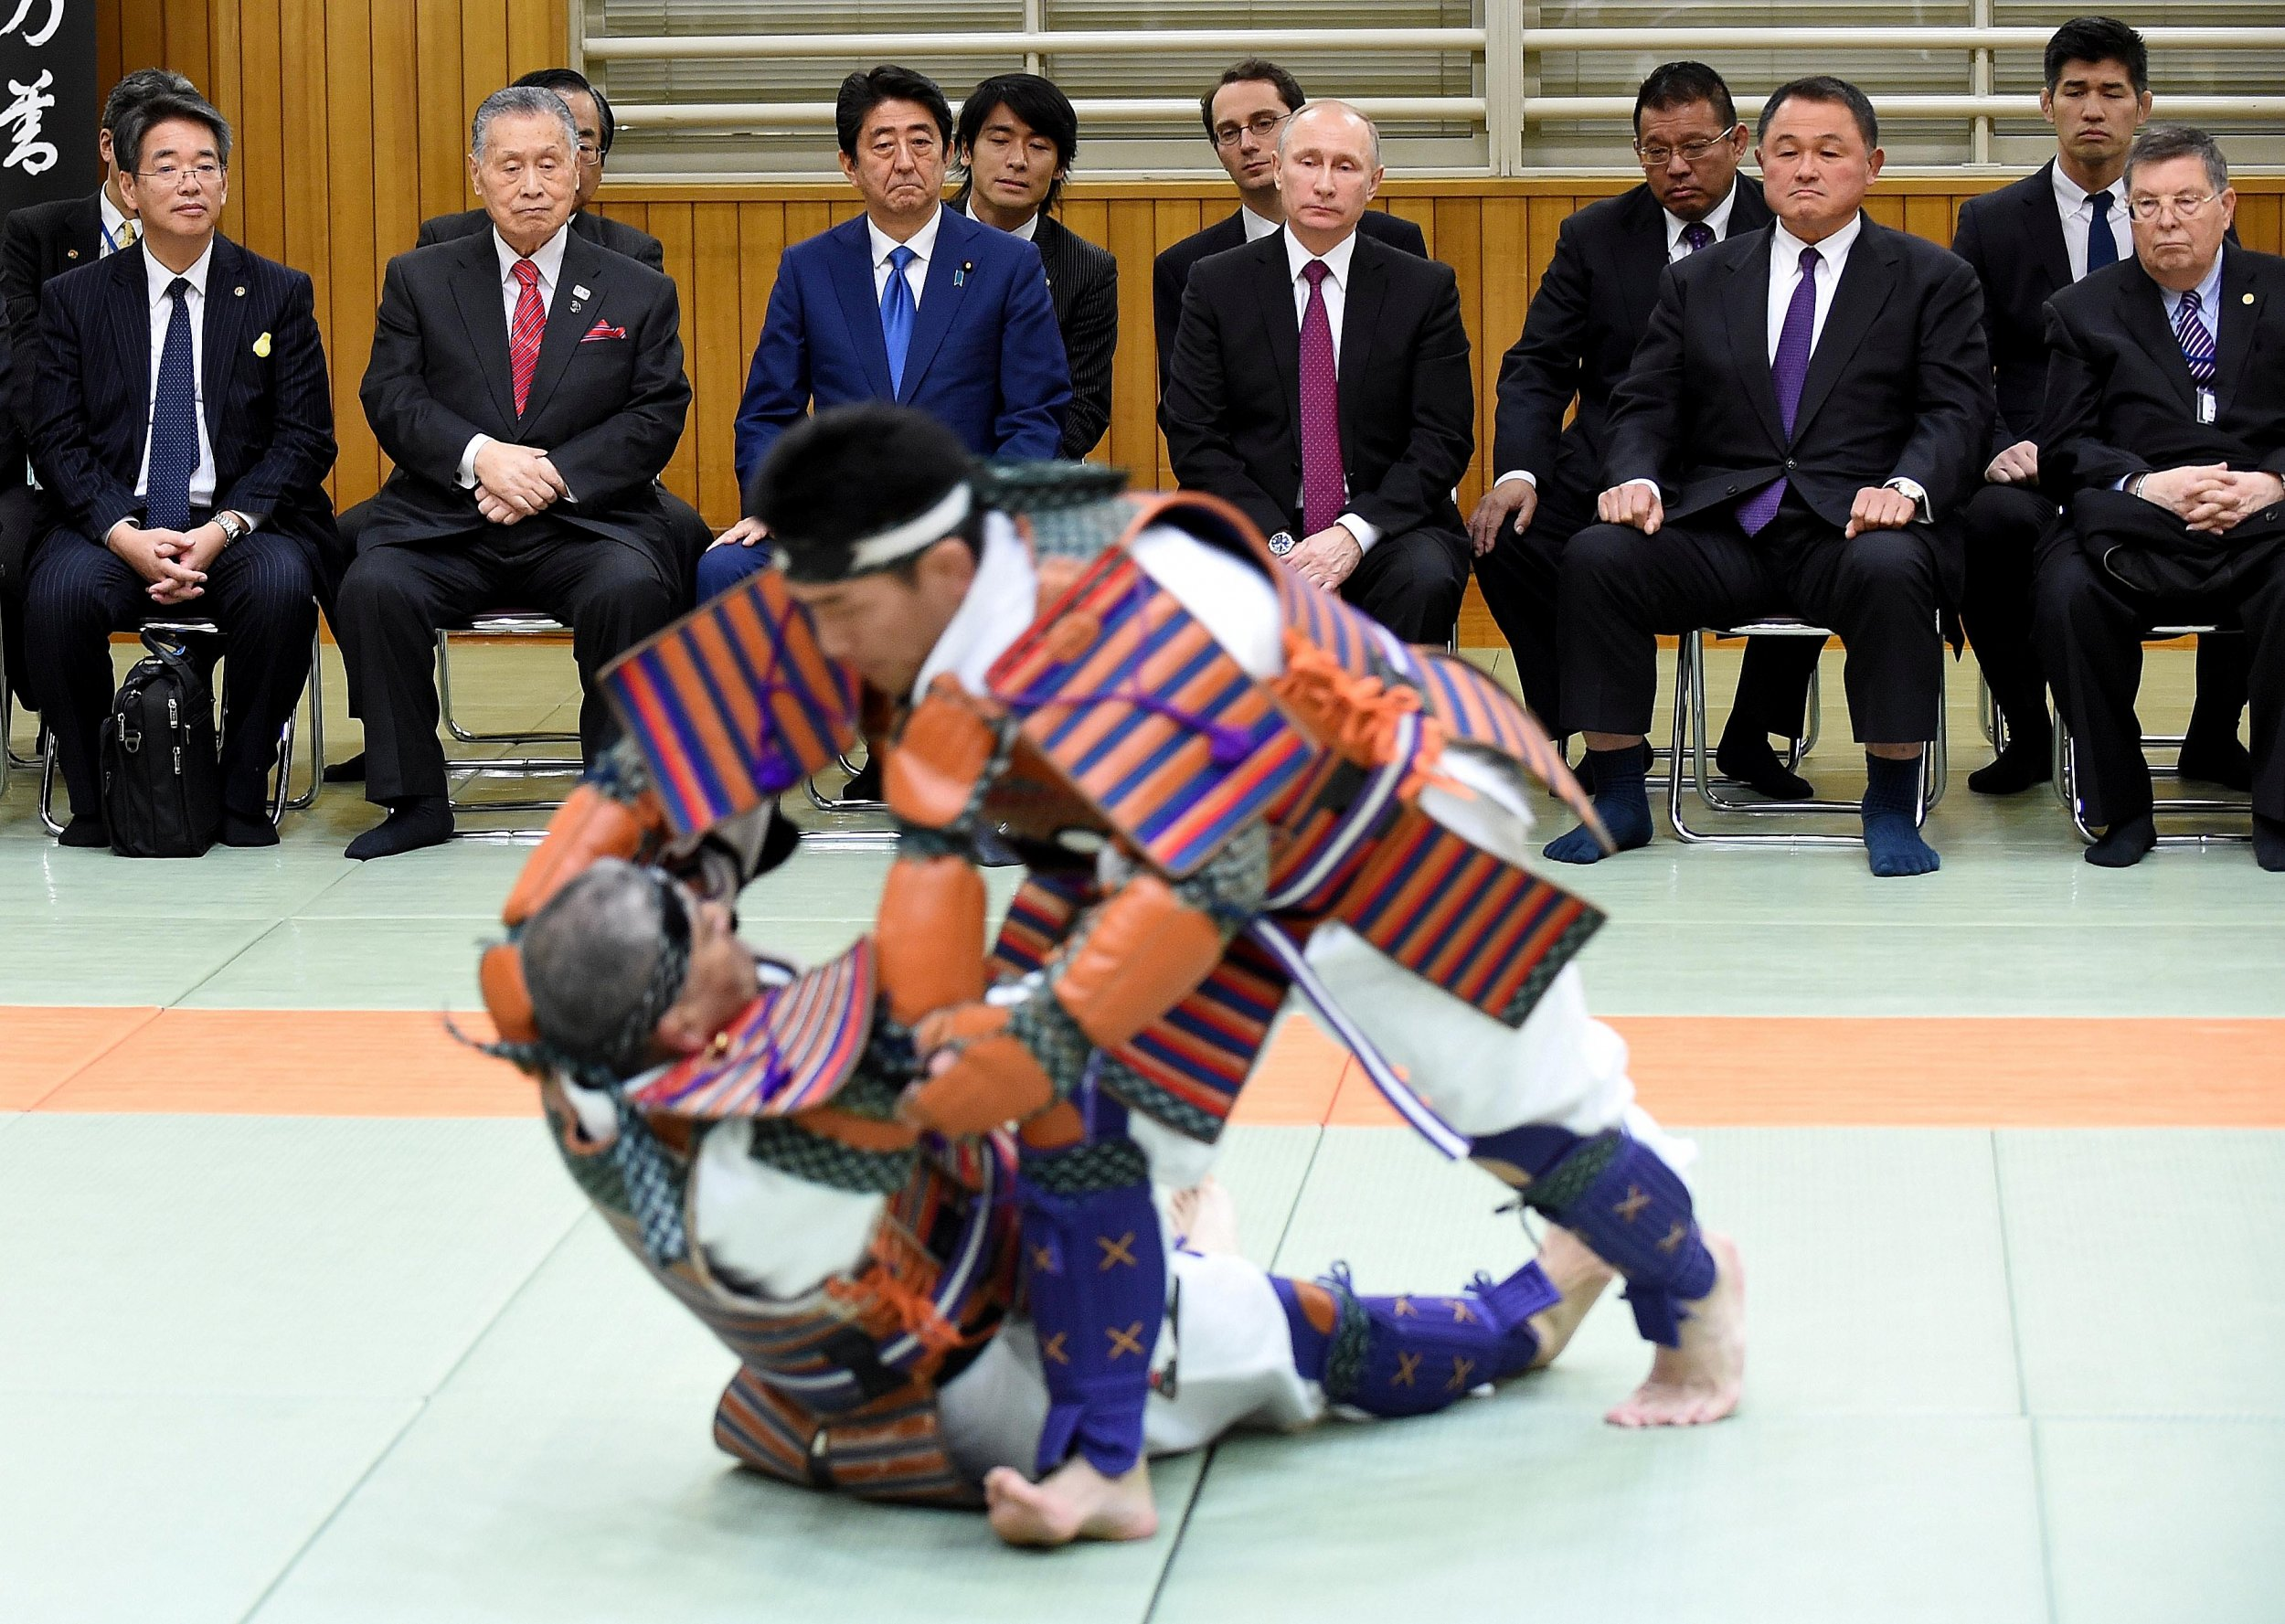 Putin S Judo Diplomacy Japan S Pm Wants Olympian To Fight Russian Leader